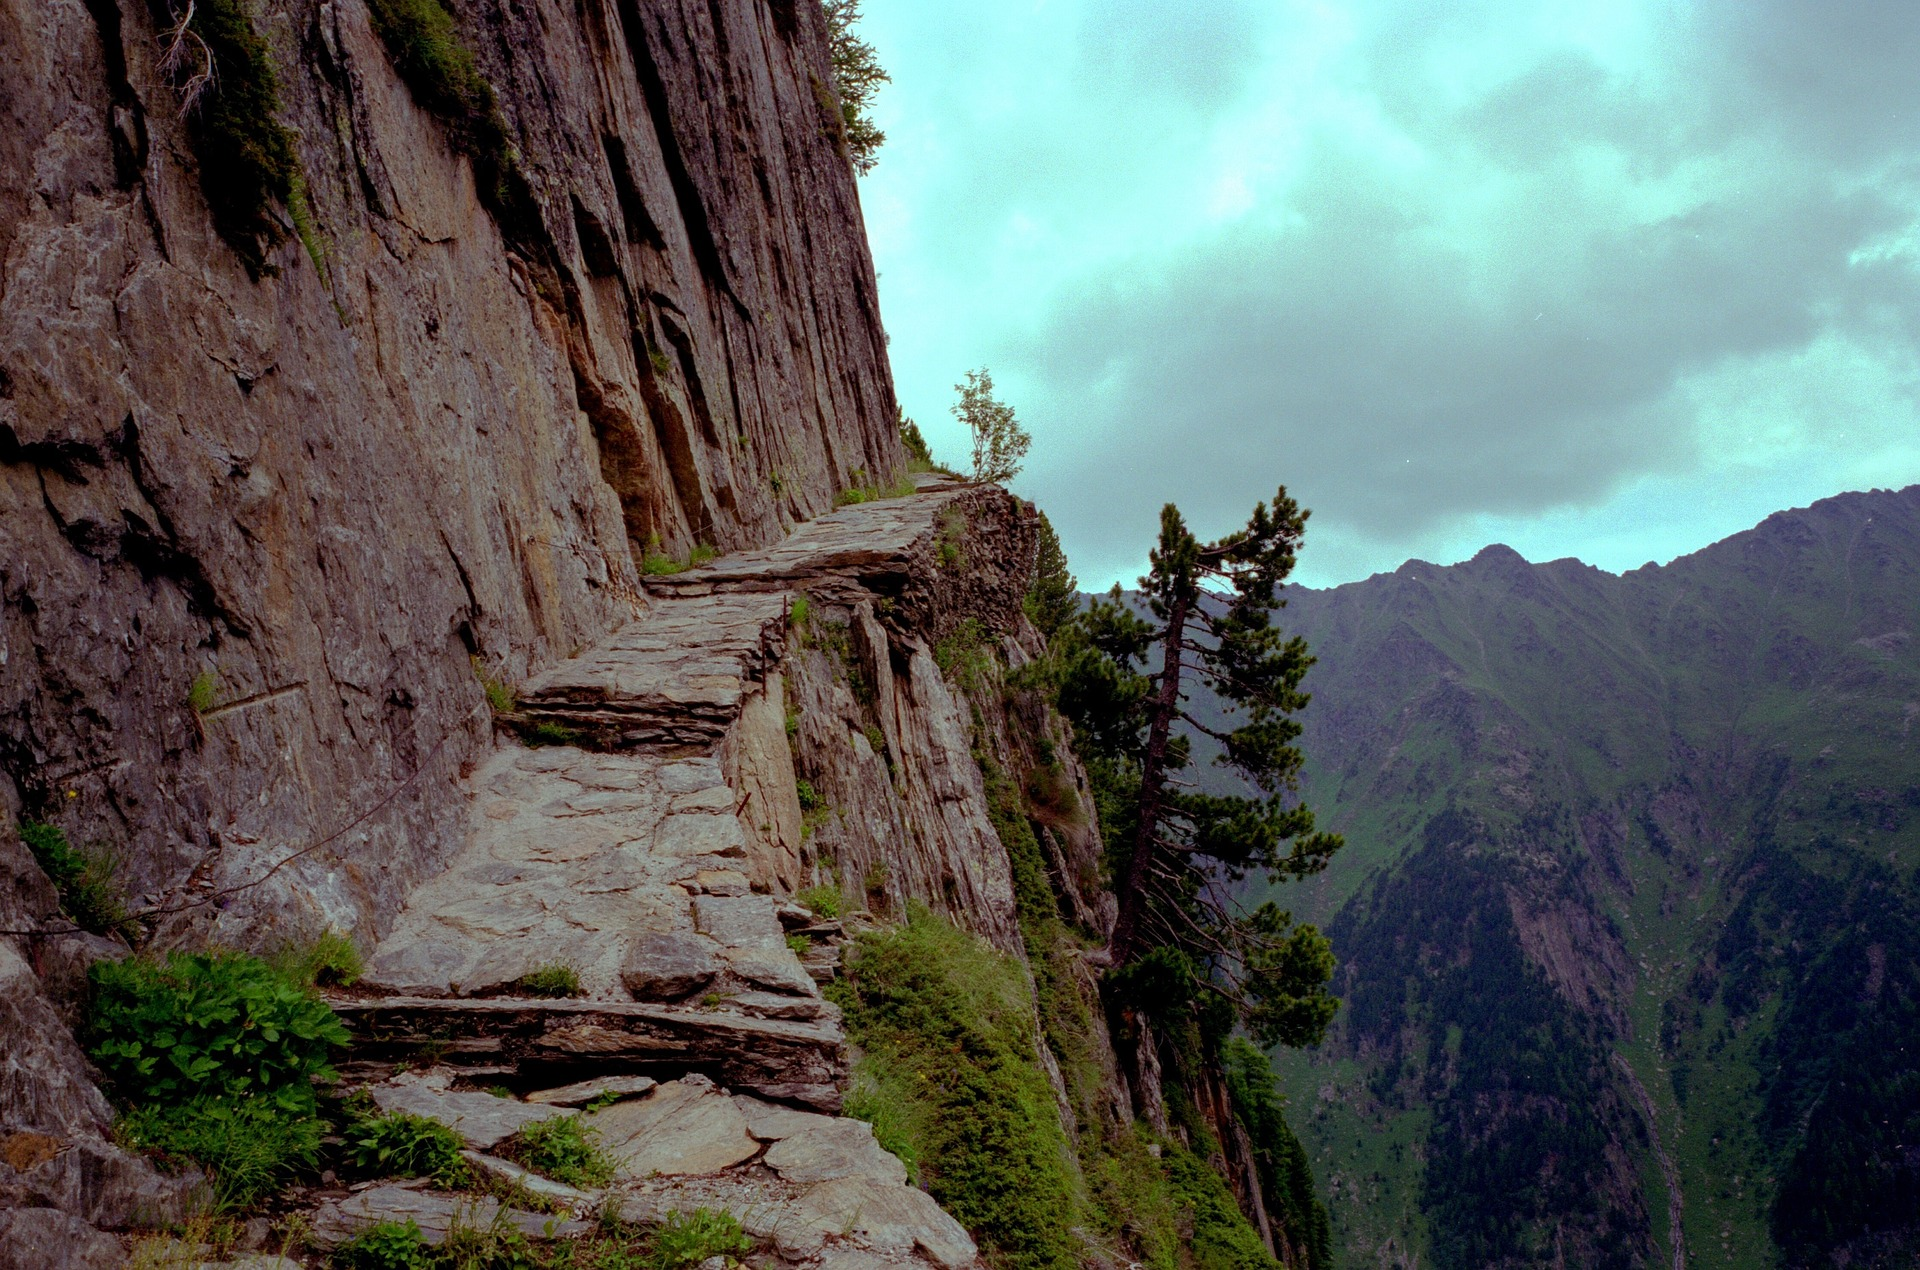 mountain-path-1119909_1920